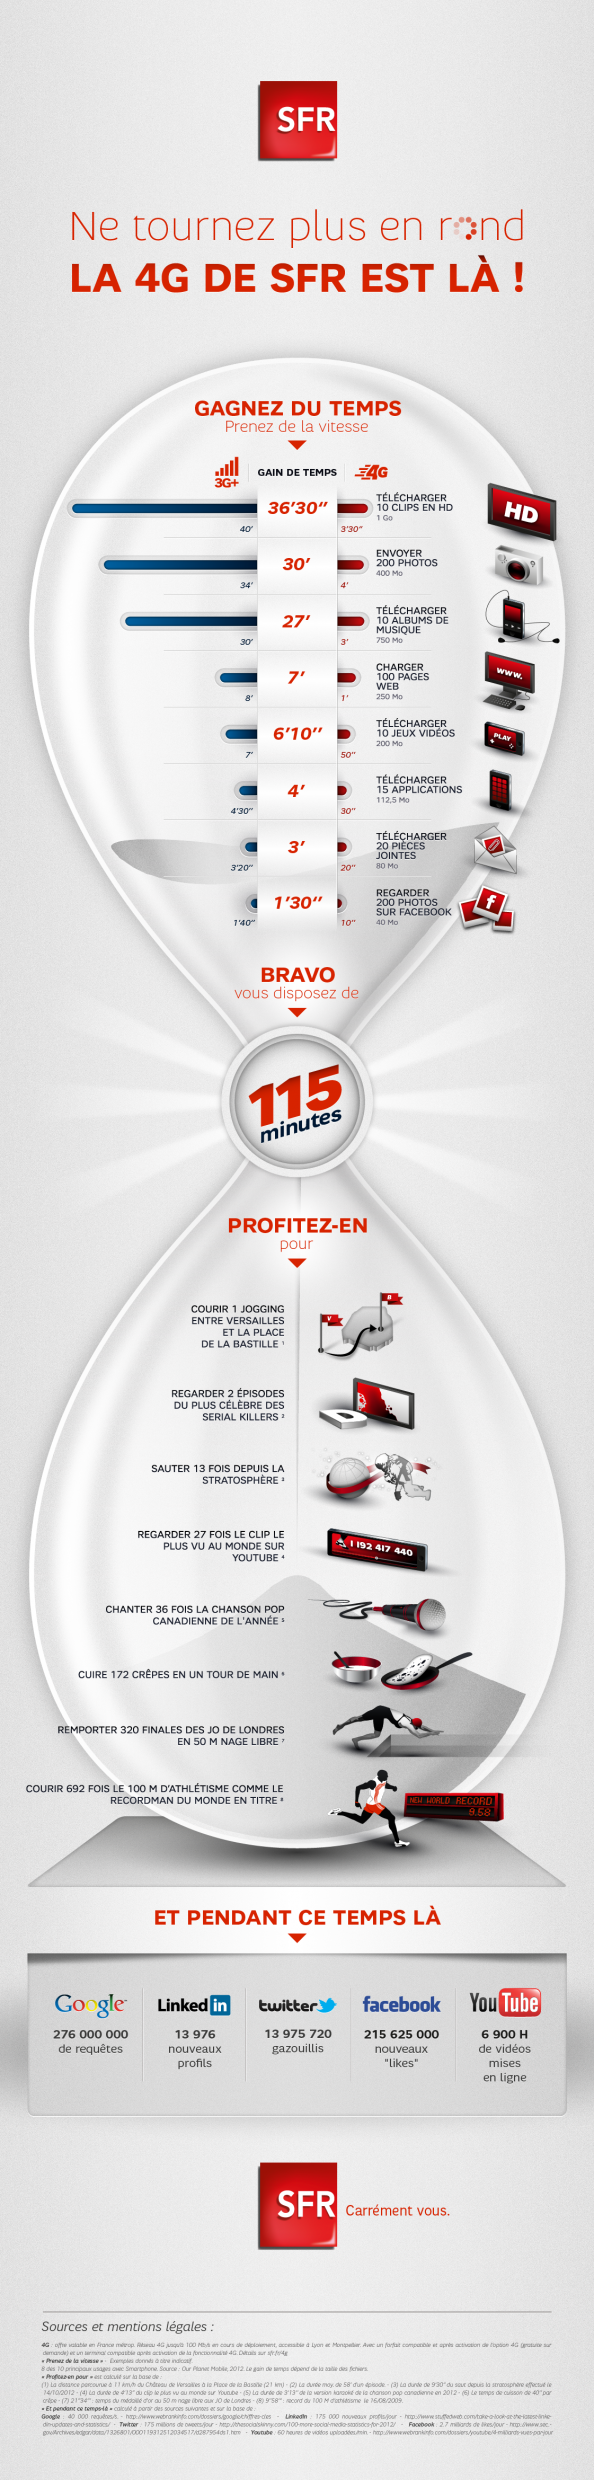 Ne tournez plus en rond, la 4G de SFR est l !  Infographic